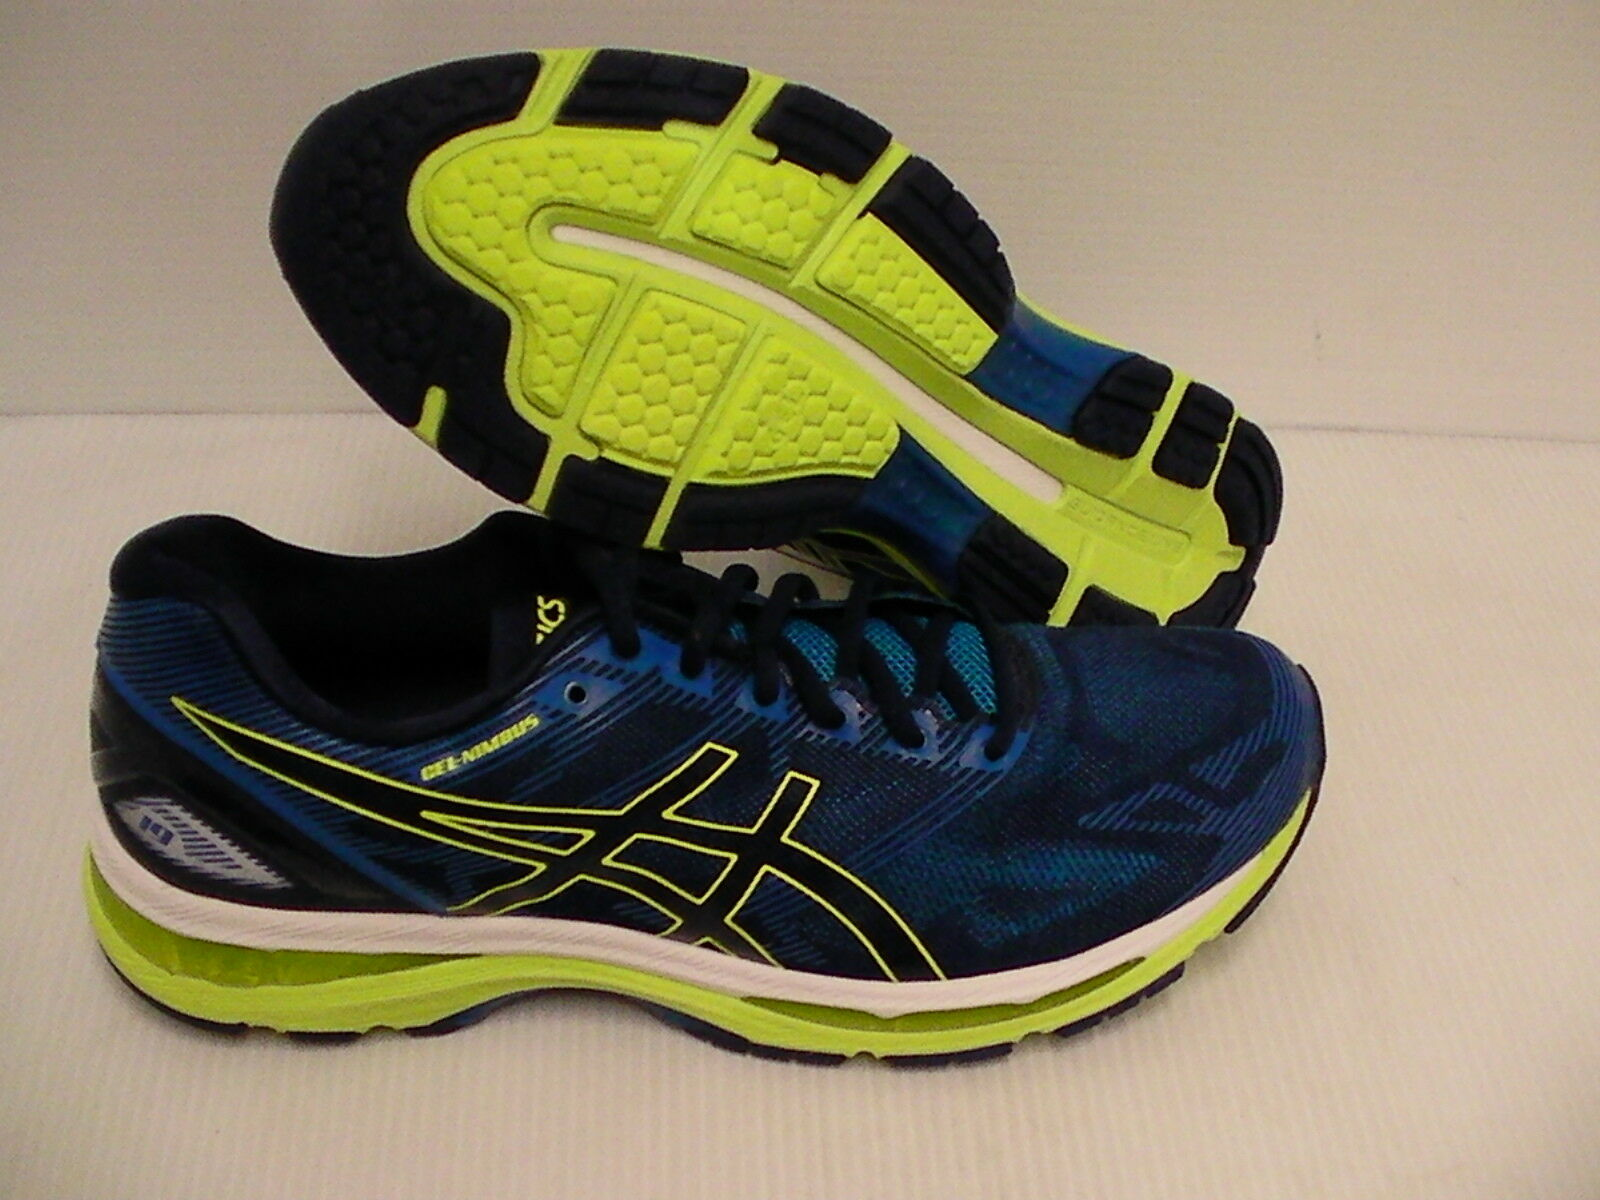 Asics men's gel nimbus 19 running shoes indigo blue safety yellow size 9 us